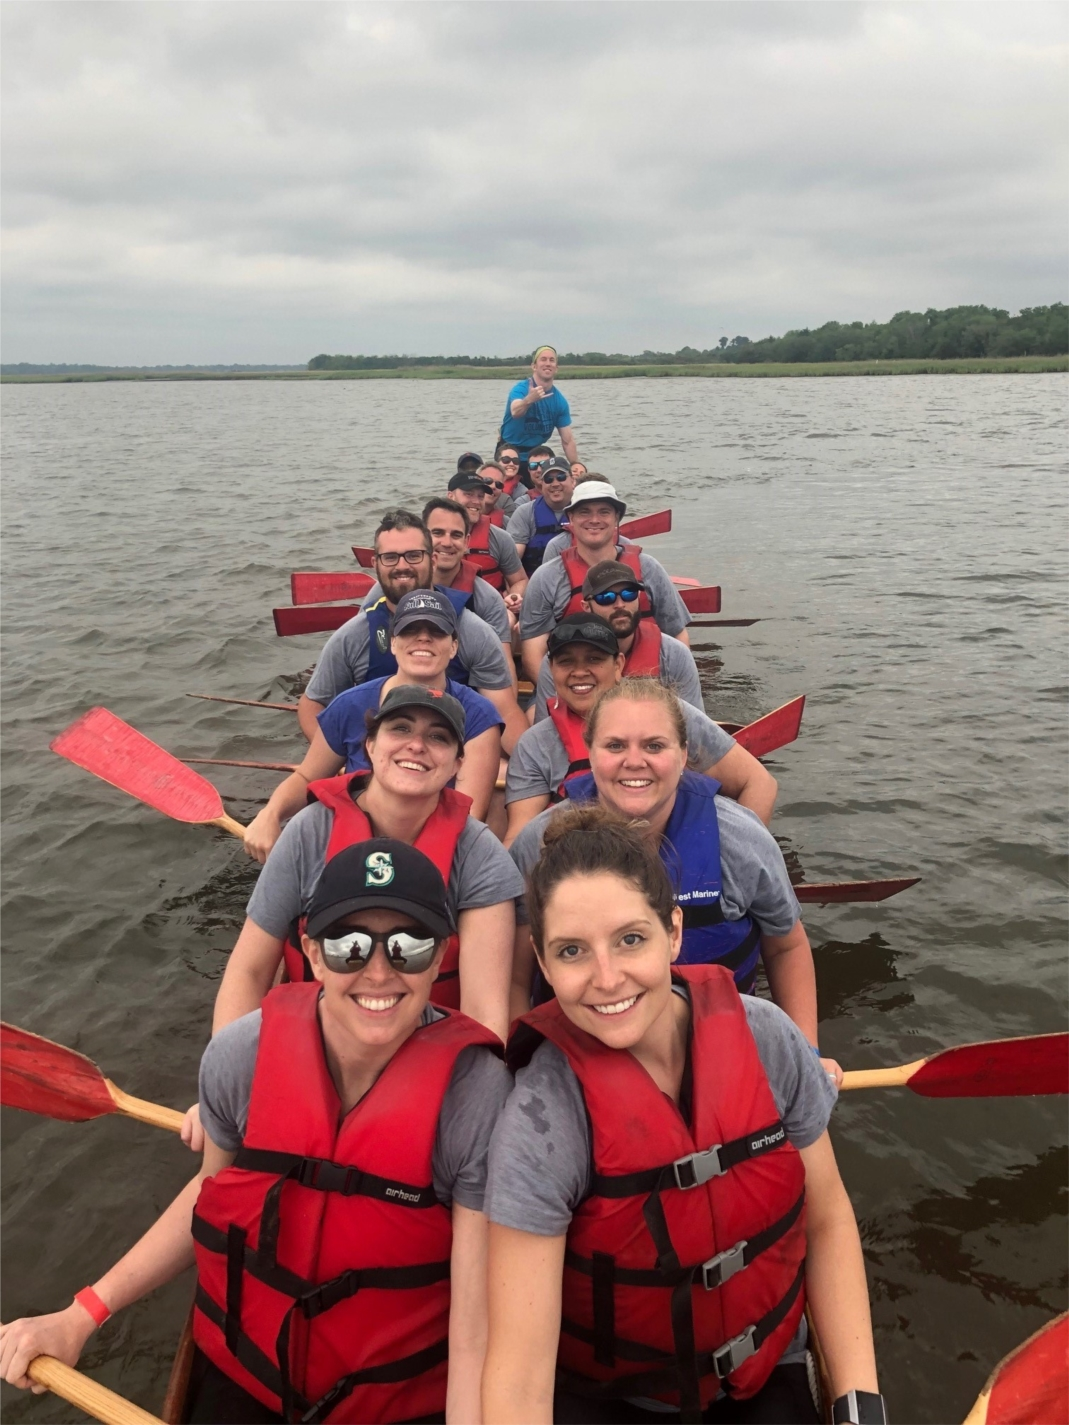 Associates in Charleston combine fitness, teambuilding and community service by participating in events like Dragon Boat Charleston, which supports cancer survivors.